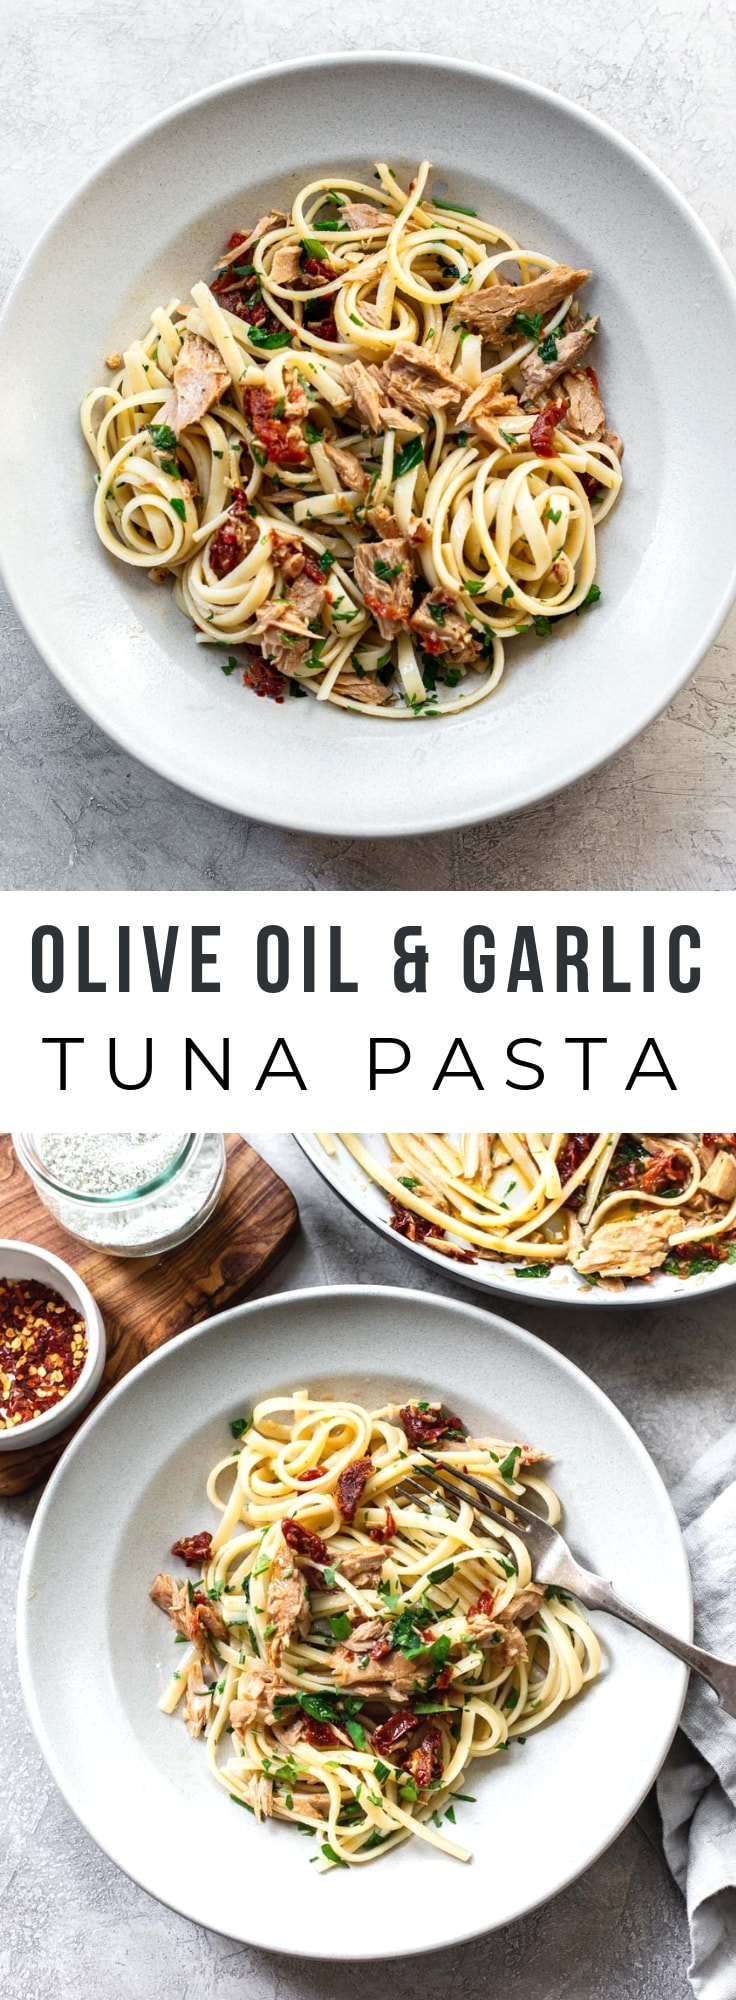 Olive Oil and Garlic Tuna Pasta